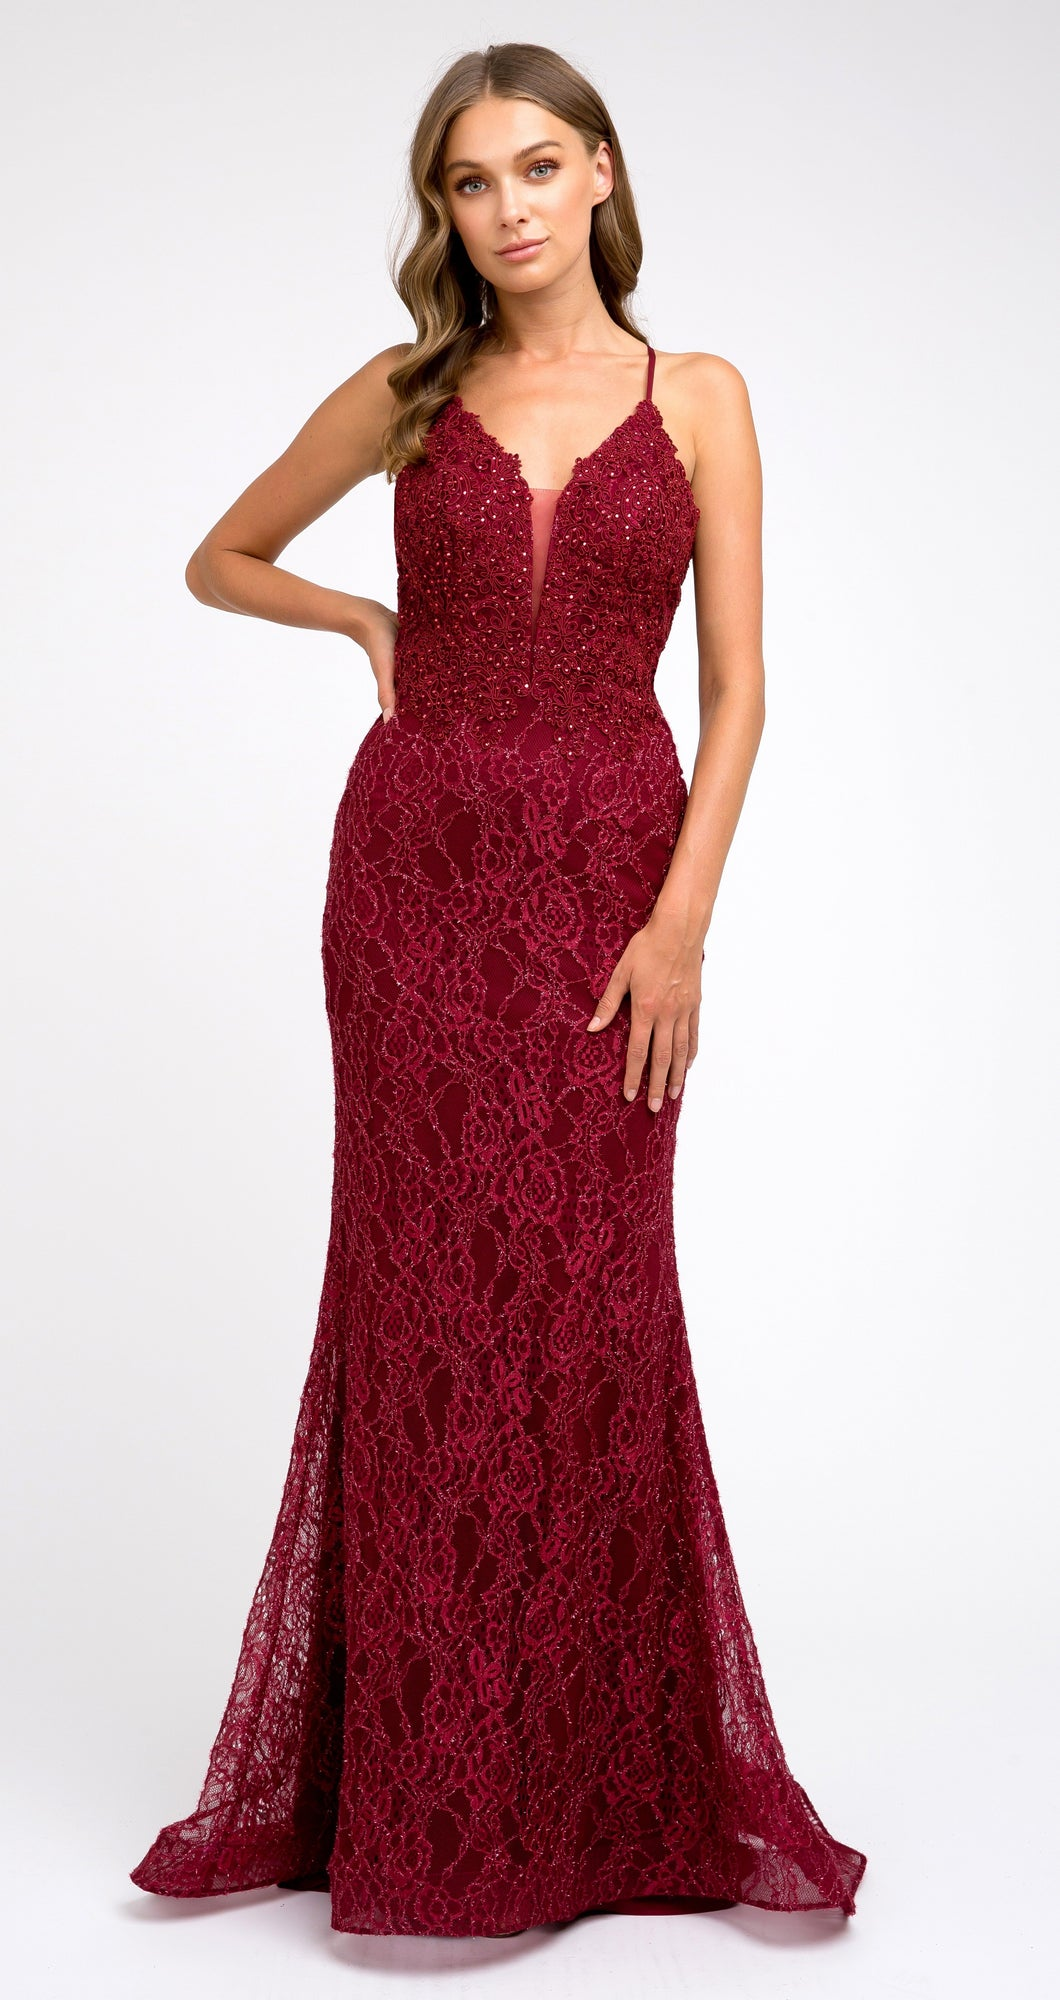 Sophia Prom Gown Lace Flared Hem Prom Dress J-220-Burgundy